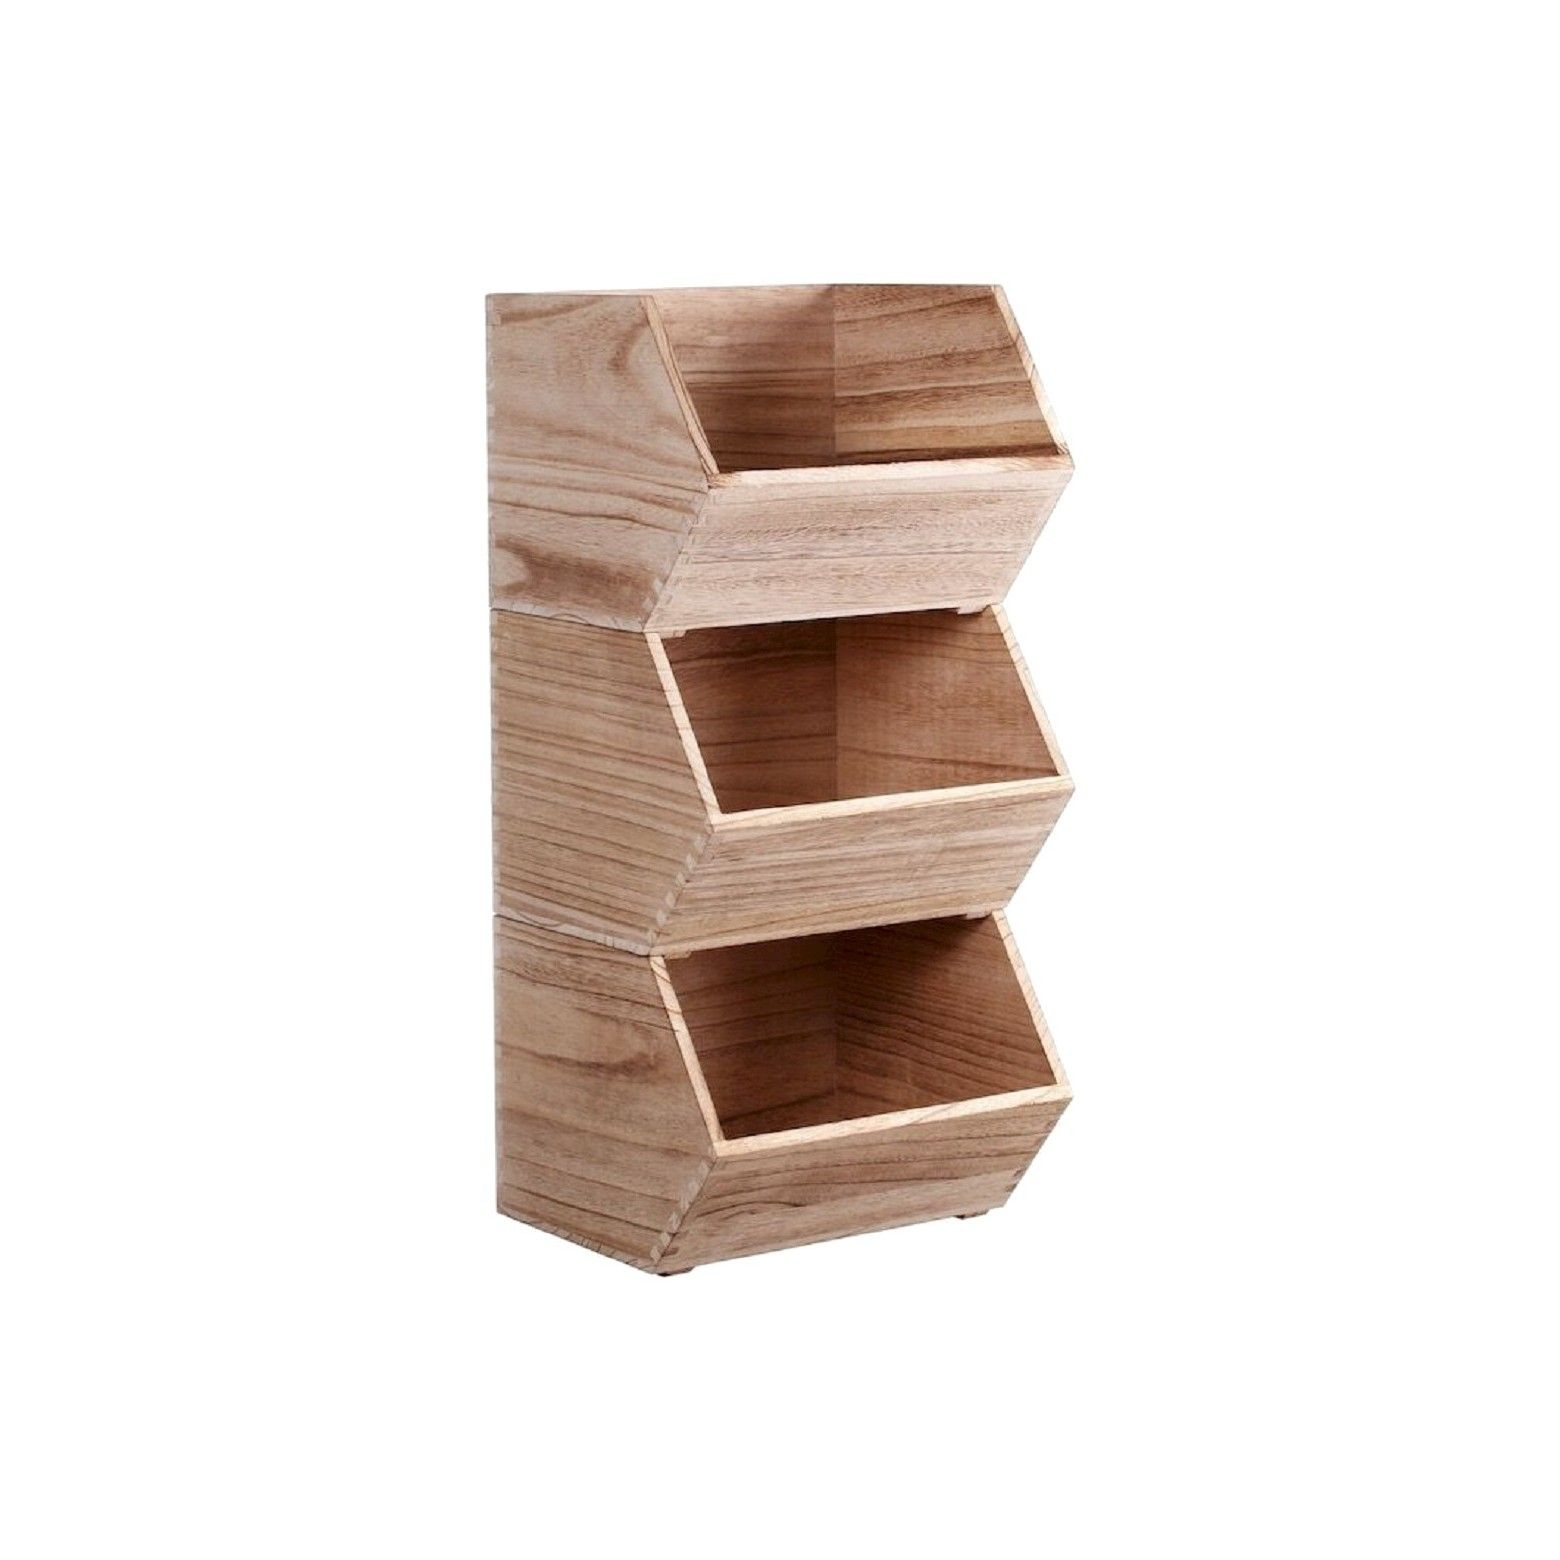 Stackable Wood Bin Small - Pillowfort™  sc 1 st  Pinterest & Pillowfort Stackable Wood Bin Small | Wood bin Stackable bins and ...